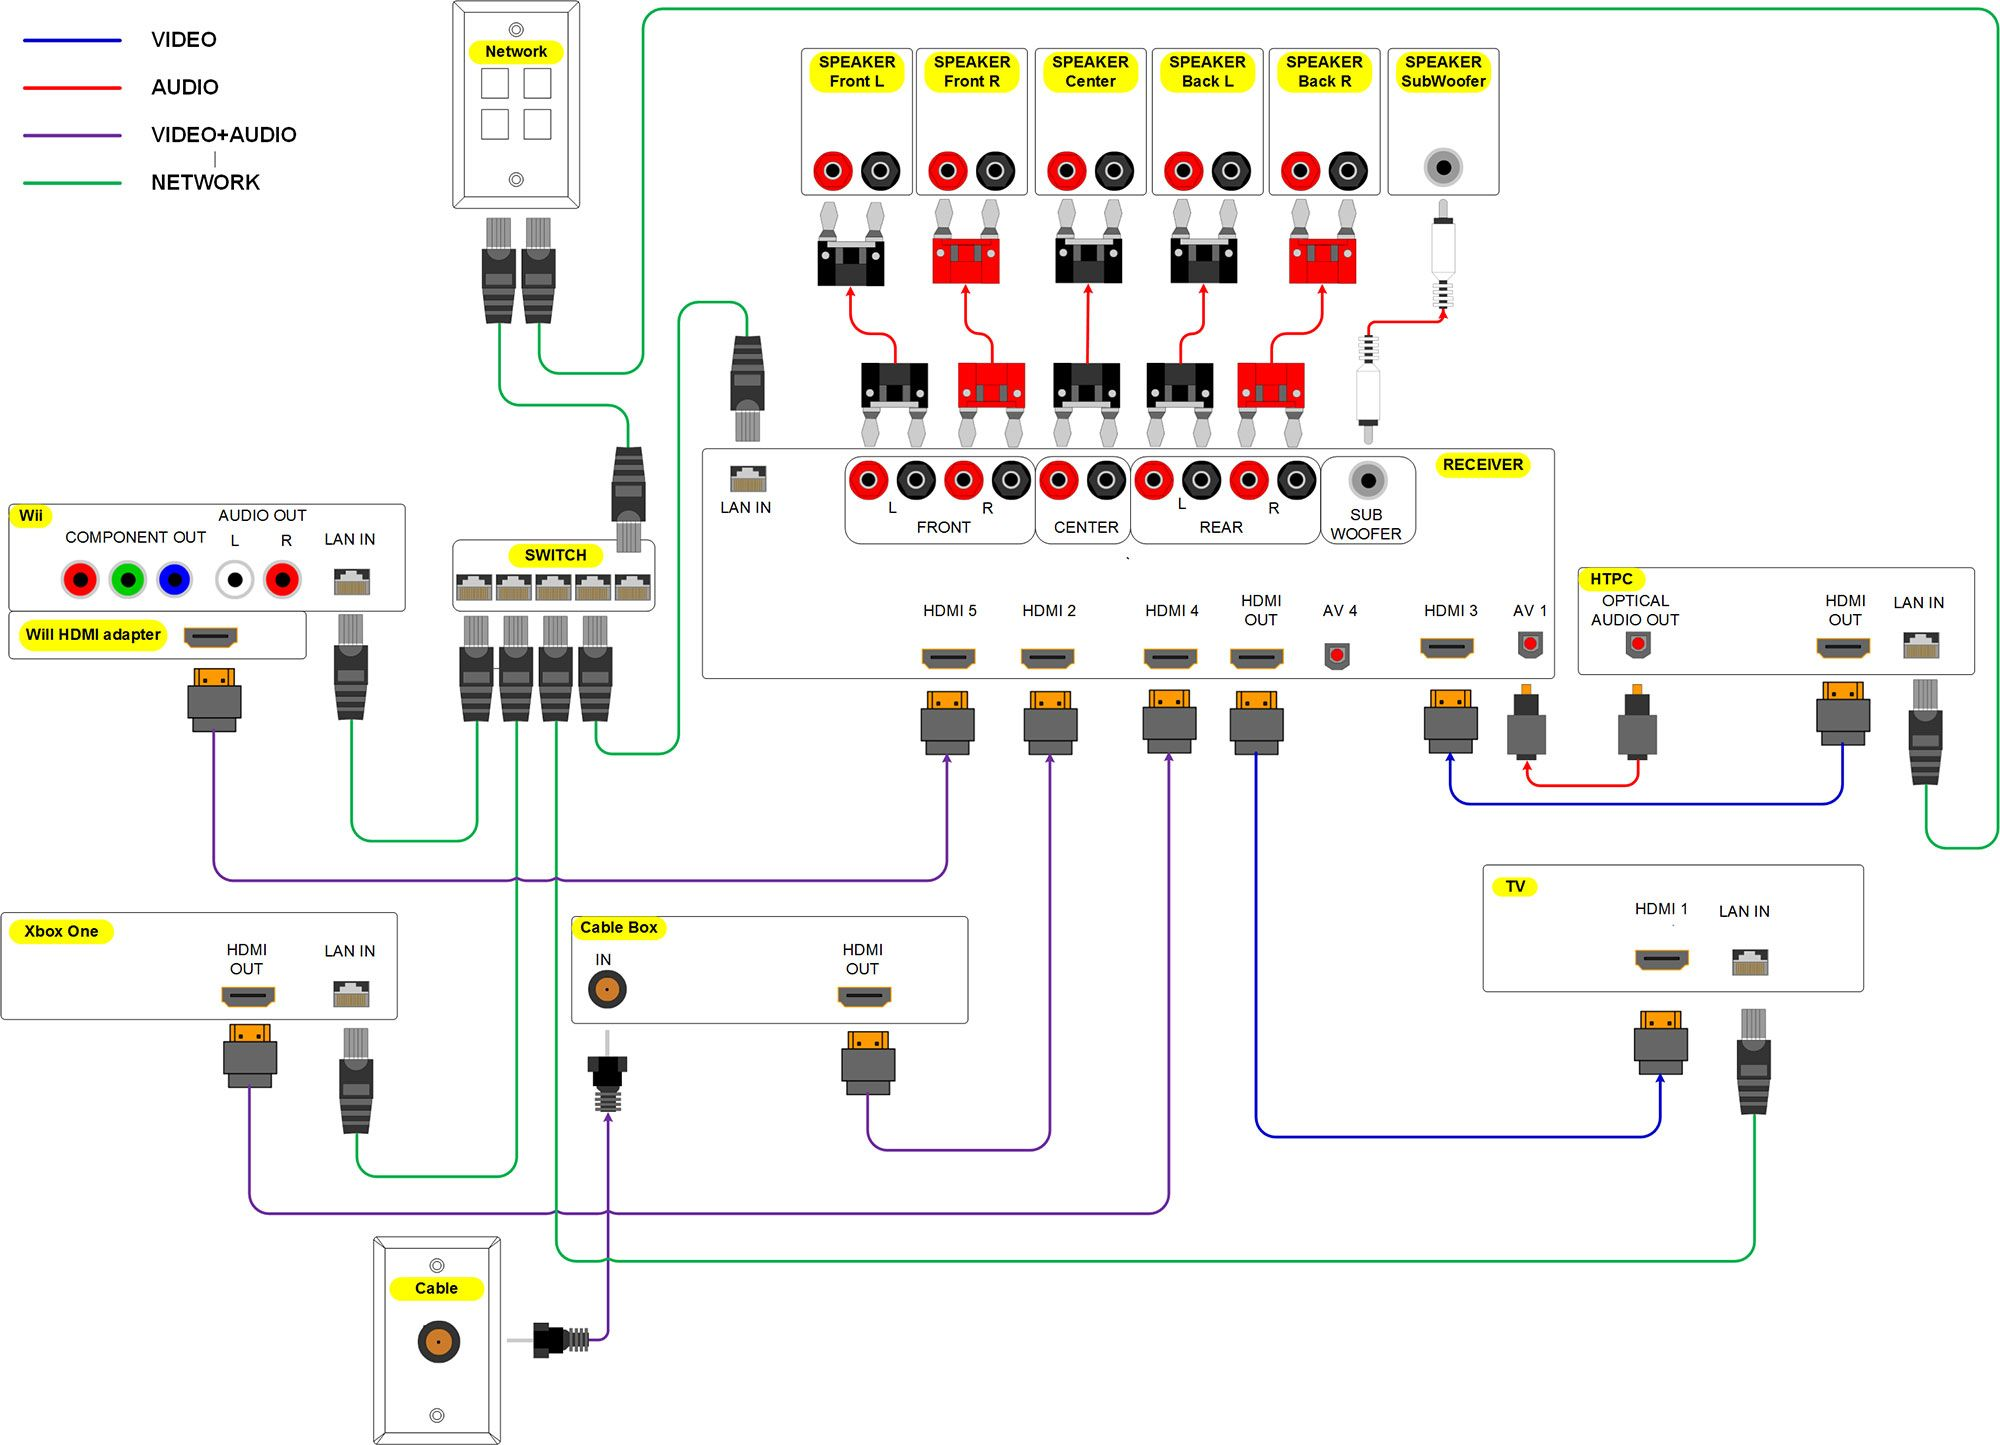 ae3ef715ed5d6ac384ec9c2b84075aef home theater wiring diagram home theater cable diagram \u2022 wiring surround sound system wiring diagram at crackthecode.co